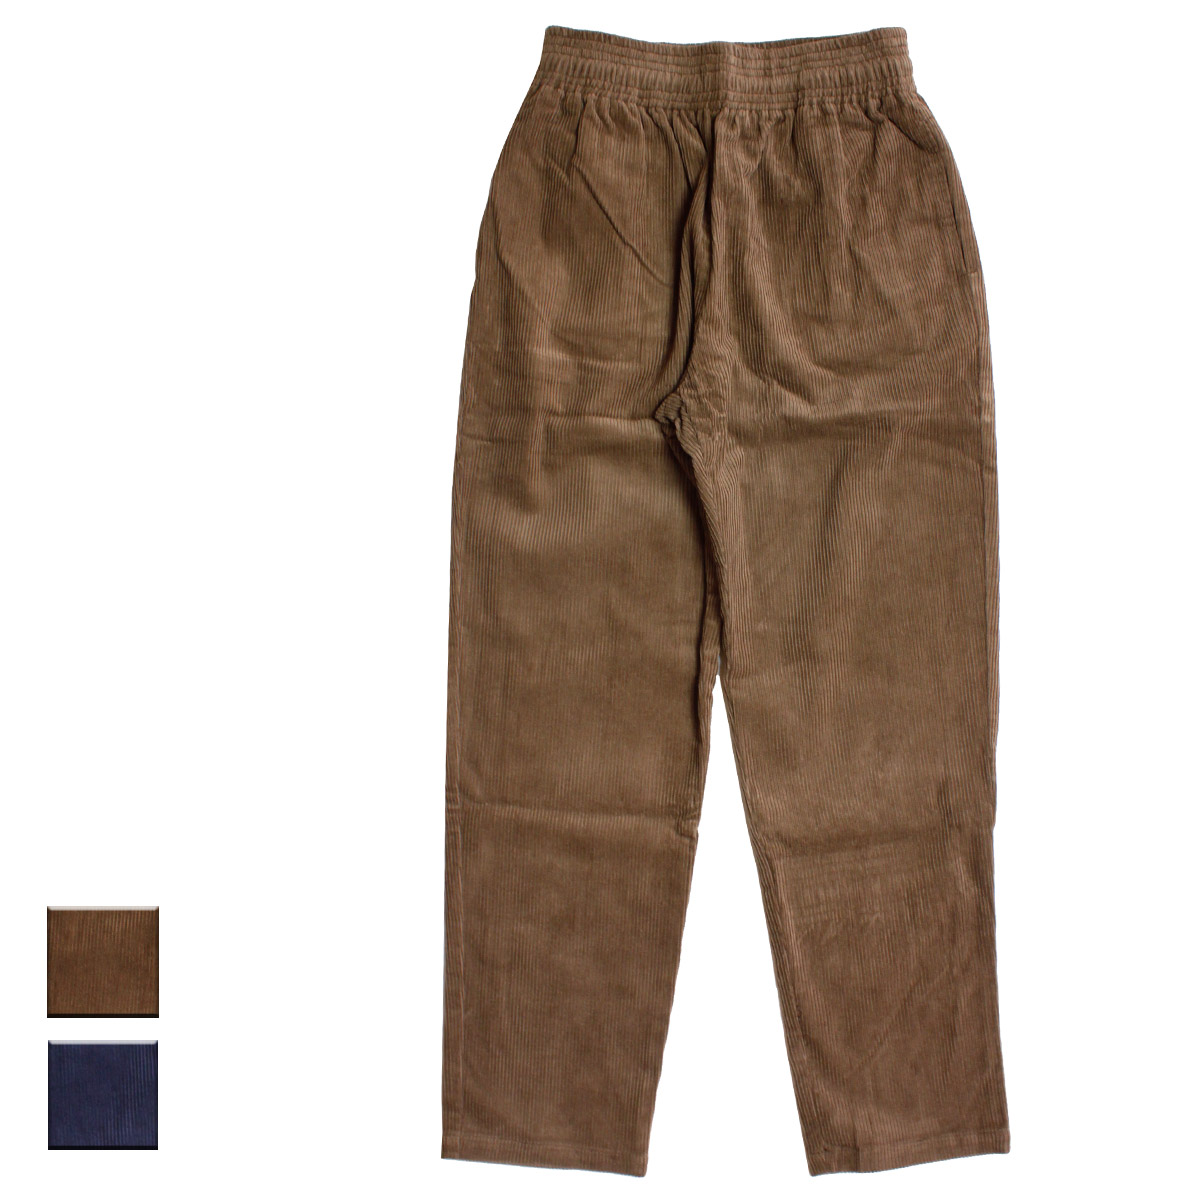 OFFSHORE オフショア CORDUROY CHEF PANTS